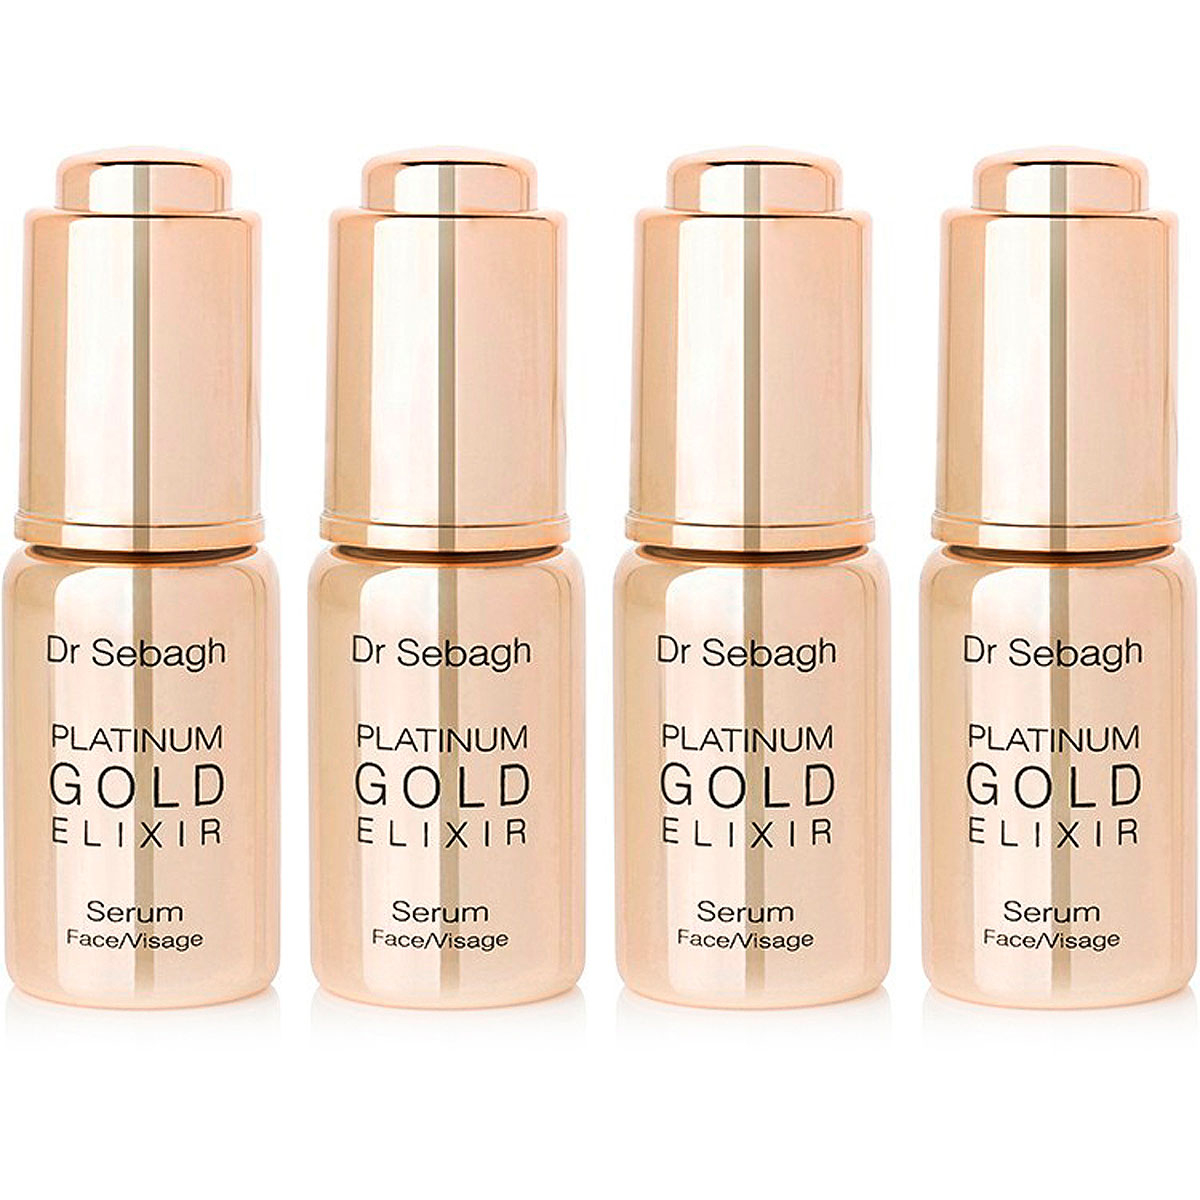 Dr Sebagh Beauty for Women, Platinum Gold Elixir - 4 X 10ml, 2019, 4 x 10 ml